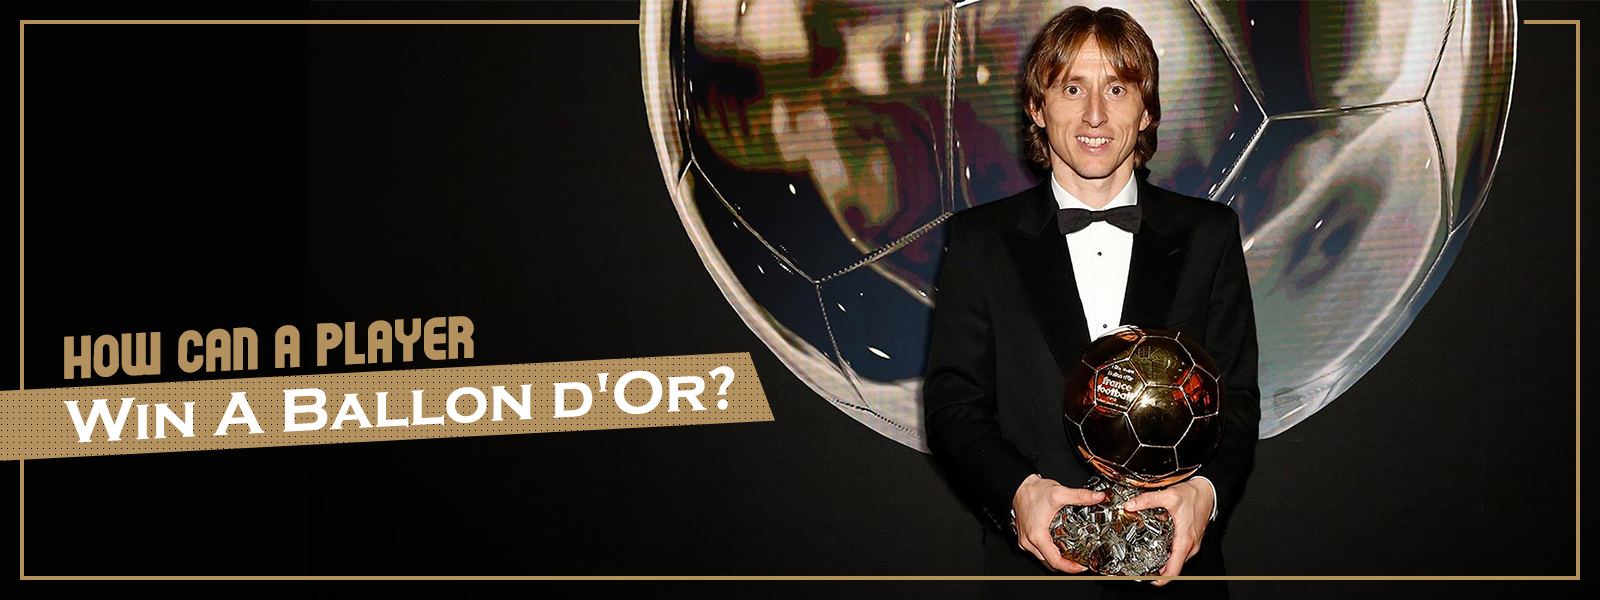 How Can A Player Win A Ballon d'Or?